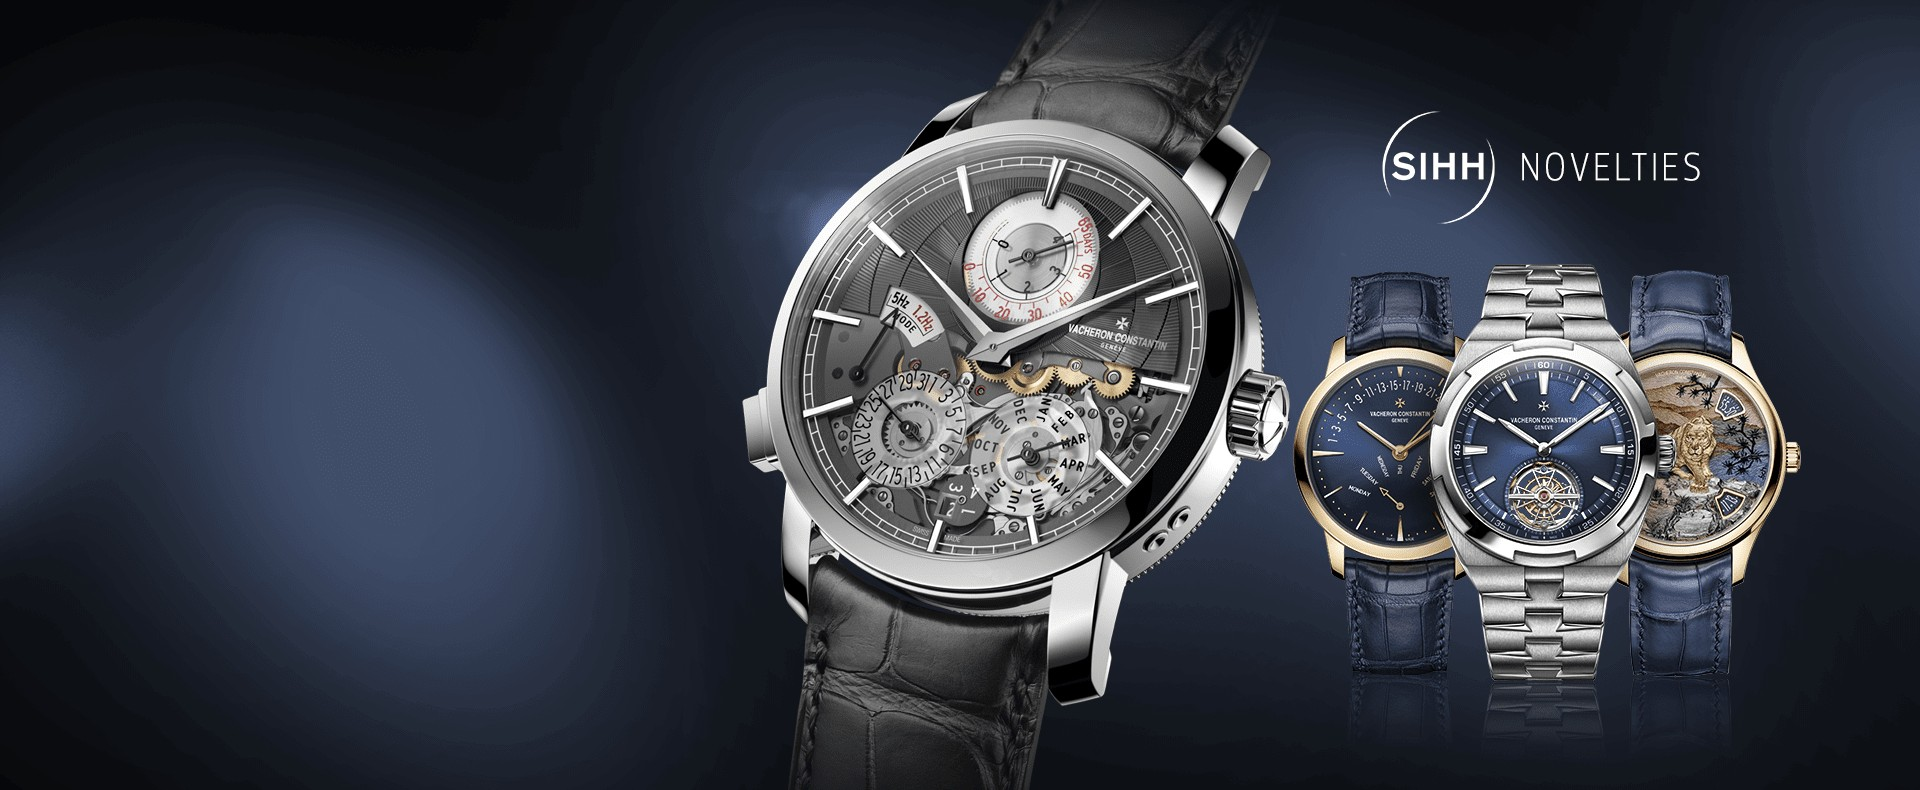 Vacheron Constantin - Luxury Watches und Fine Watches